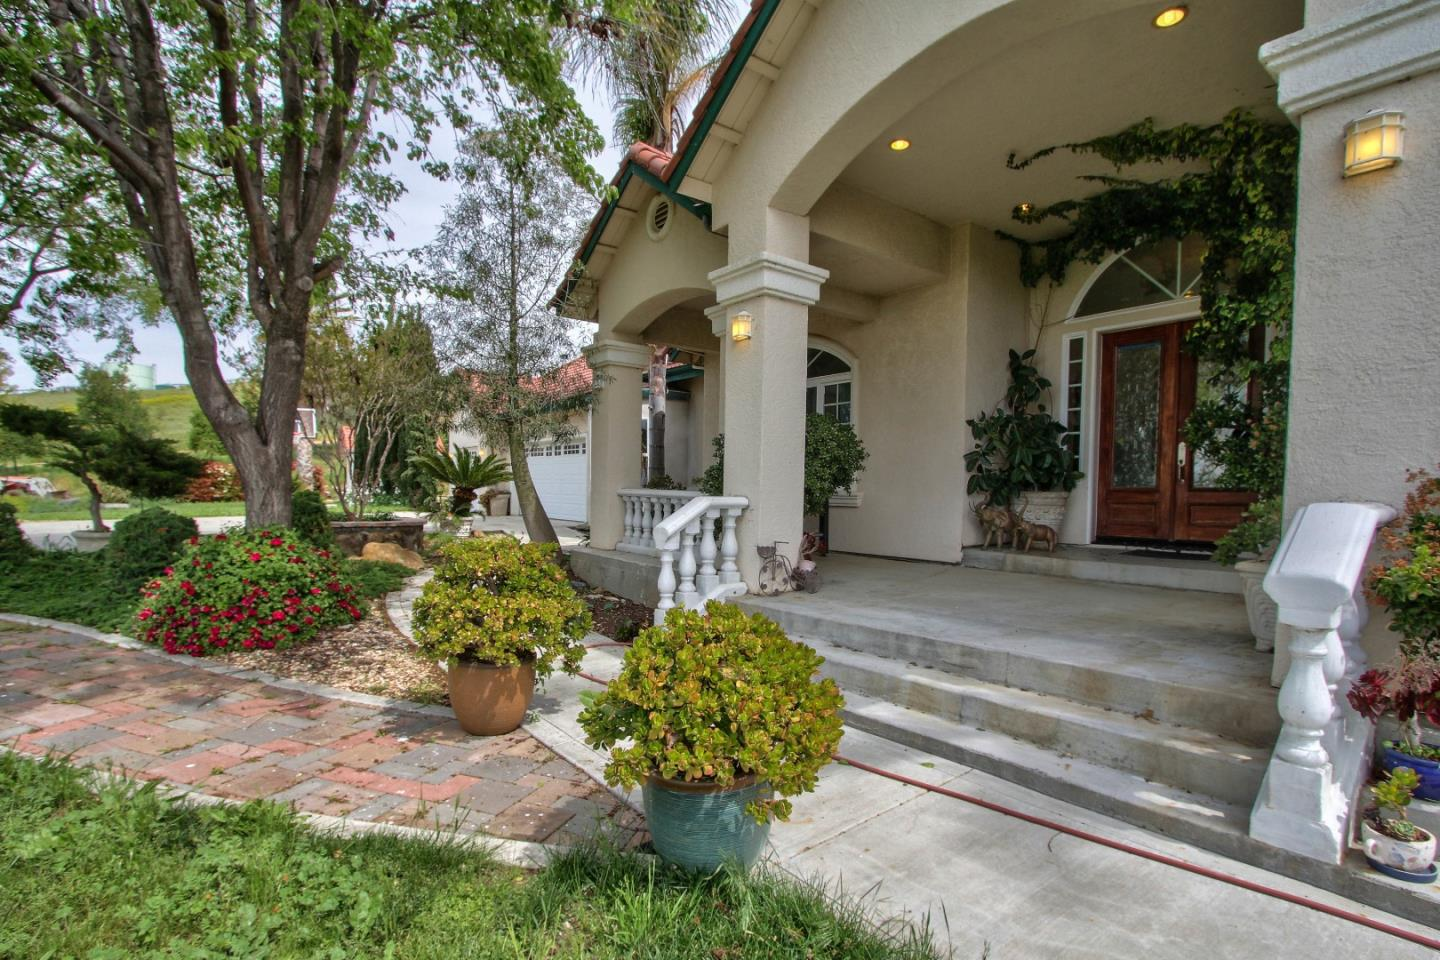 Additional photo for property listing at 845 Foxhill Circle  Hollister, Калифорния 95023 Соединенные Штаты